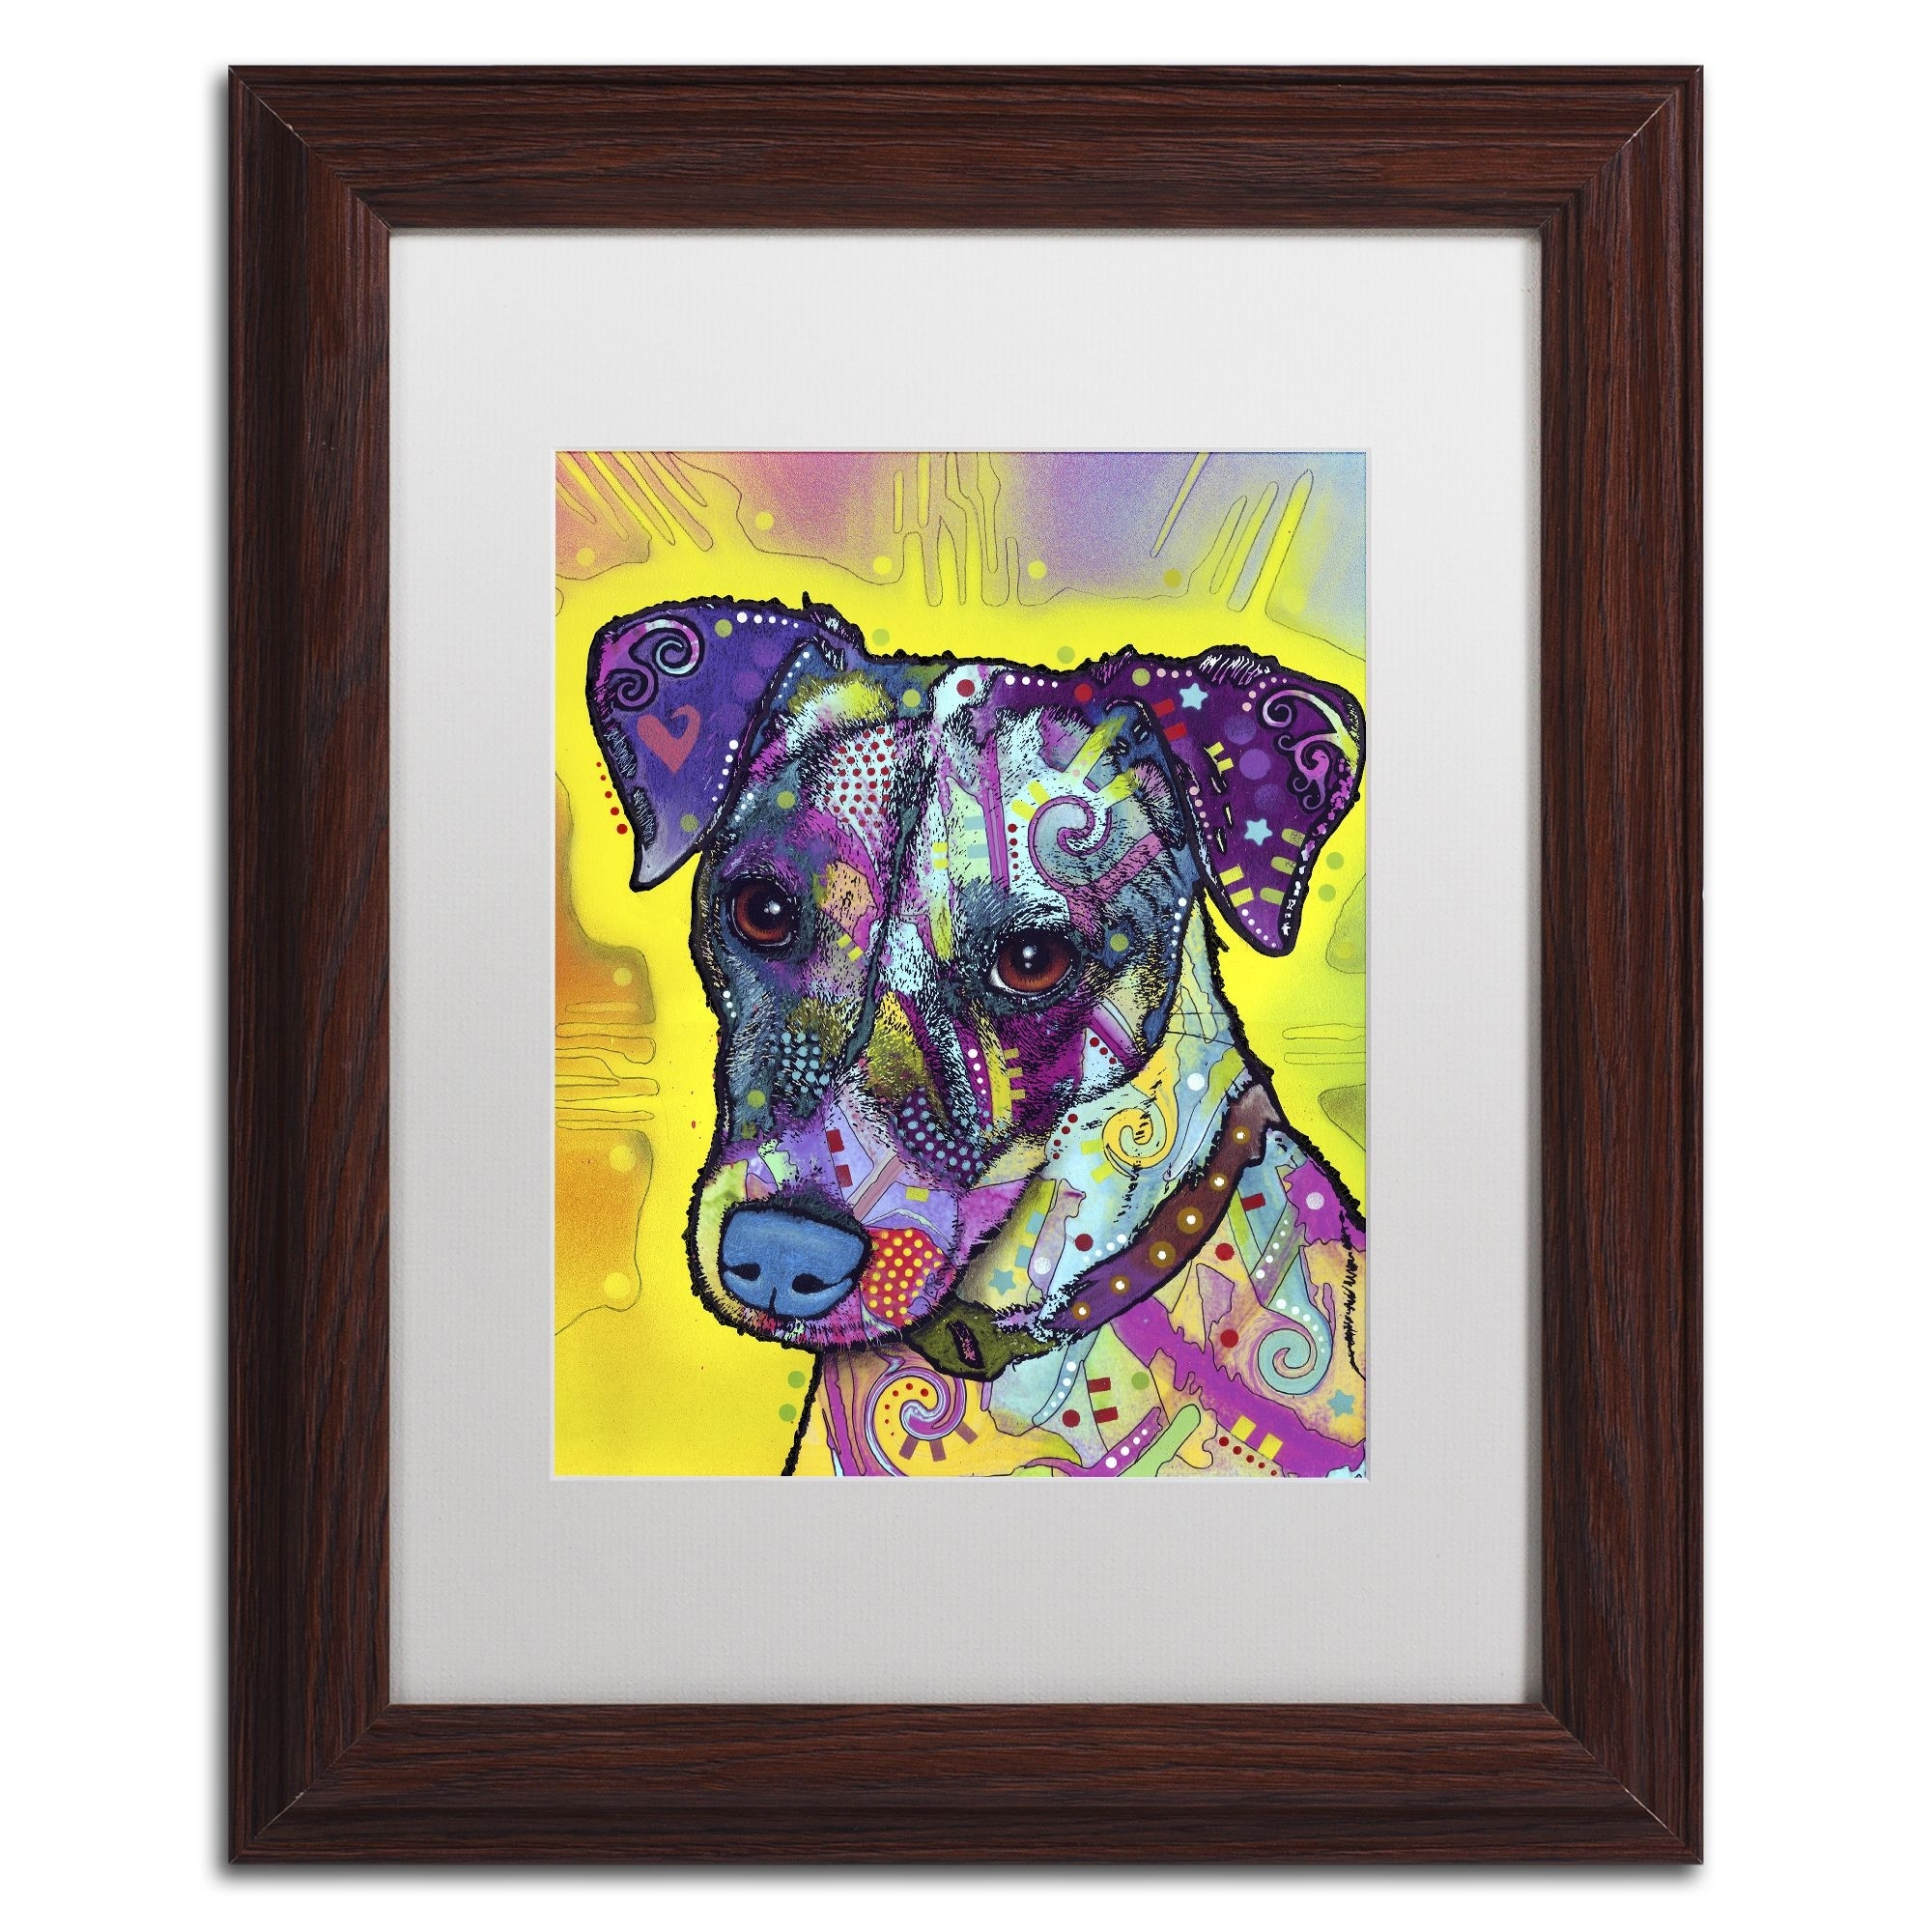 Dean Russo 'jack Russell' Matted Framed Art | Products | Pinterest With Regard To Recent Dog Art Framed Prints (View 5 of 15)